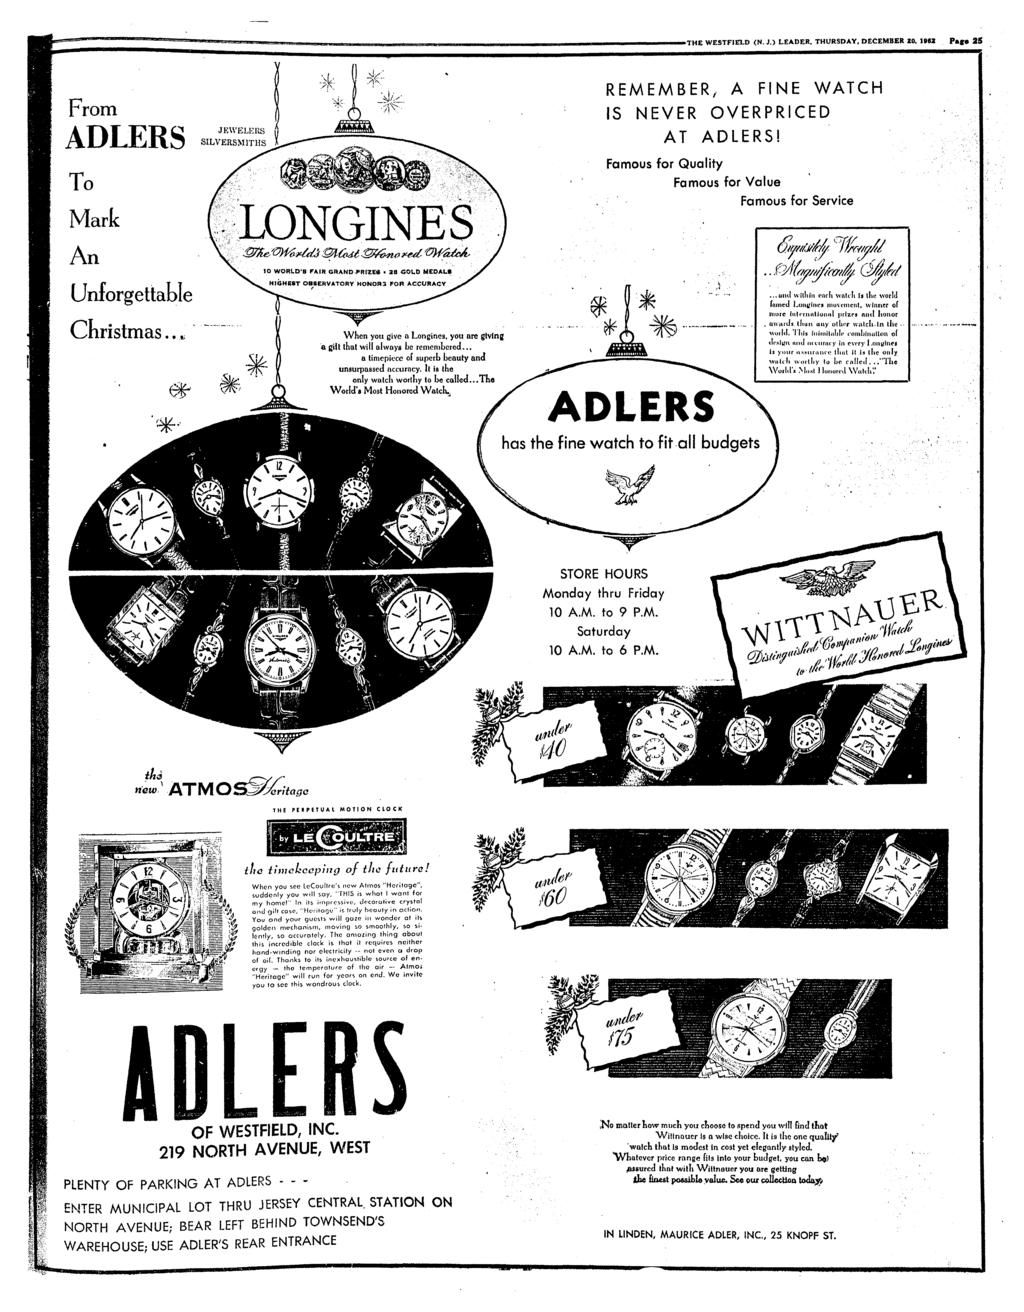 THE WESTFIELD (N. J.) LEADER, THURSDAY, DECEMBER 20. 1962 Page 25 From ADLERS To Mark An Unforgettable Chrstmas..* JKWELERS SILVERSMITHS sk LONGINES 10 WORLD'S PAIR GHAND.